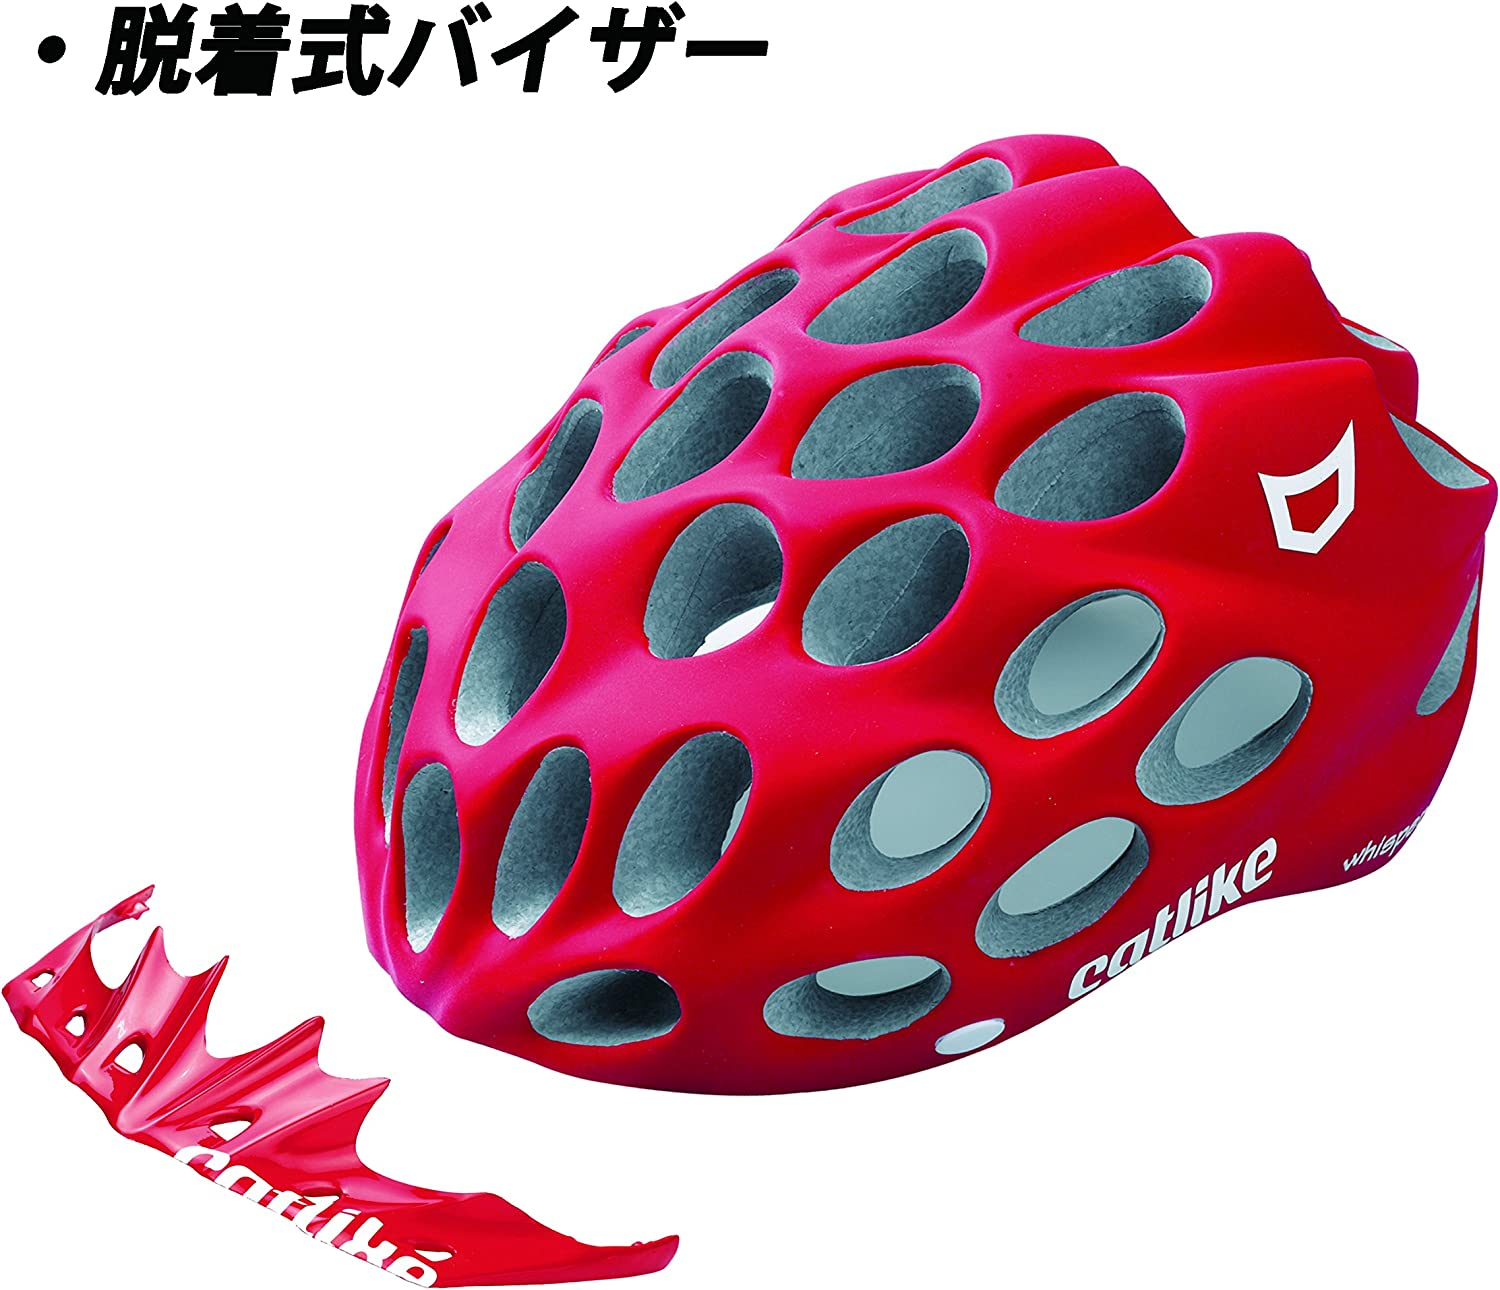 Catlike Whisper - Casco de whisper, color blanco y rojo: Amazon.es ...